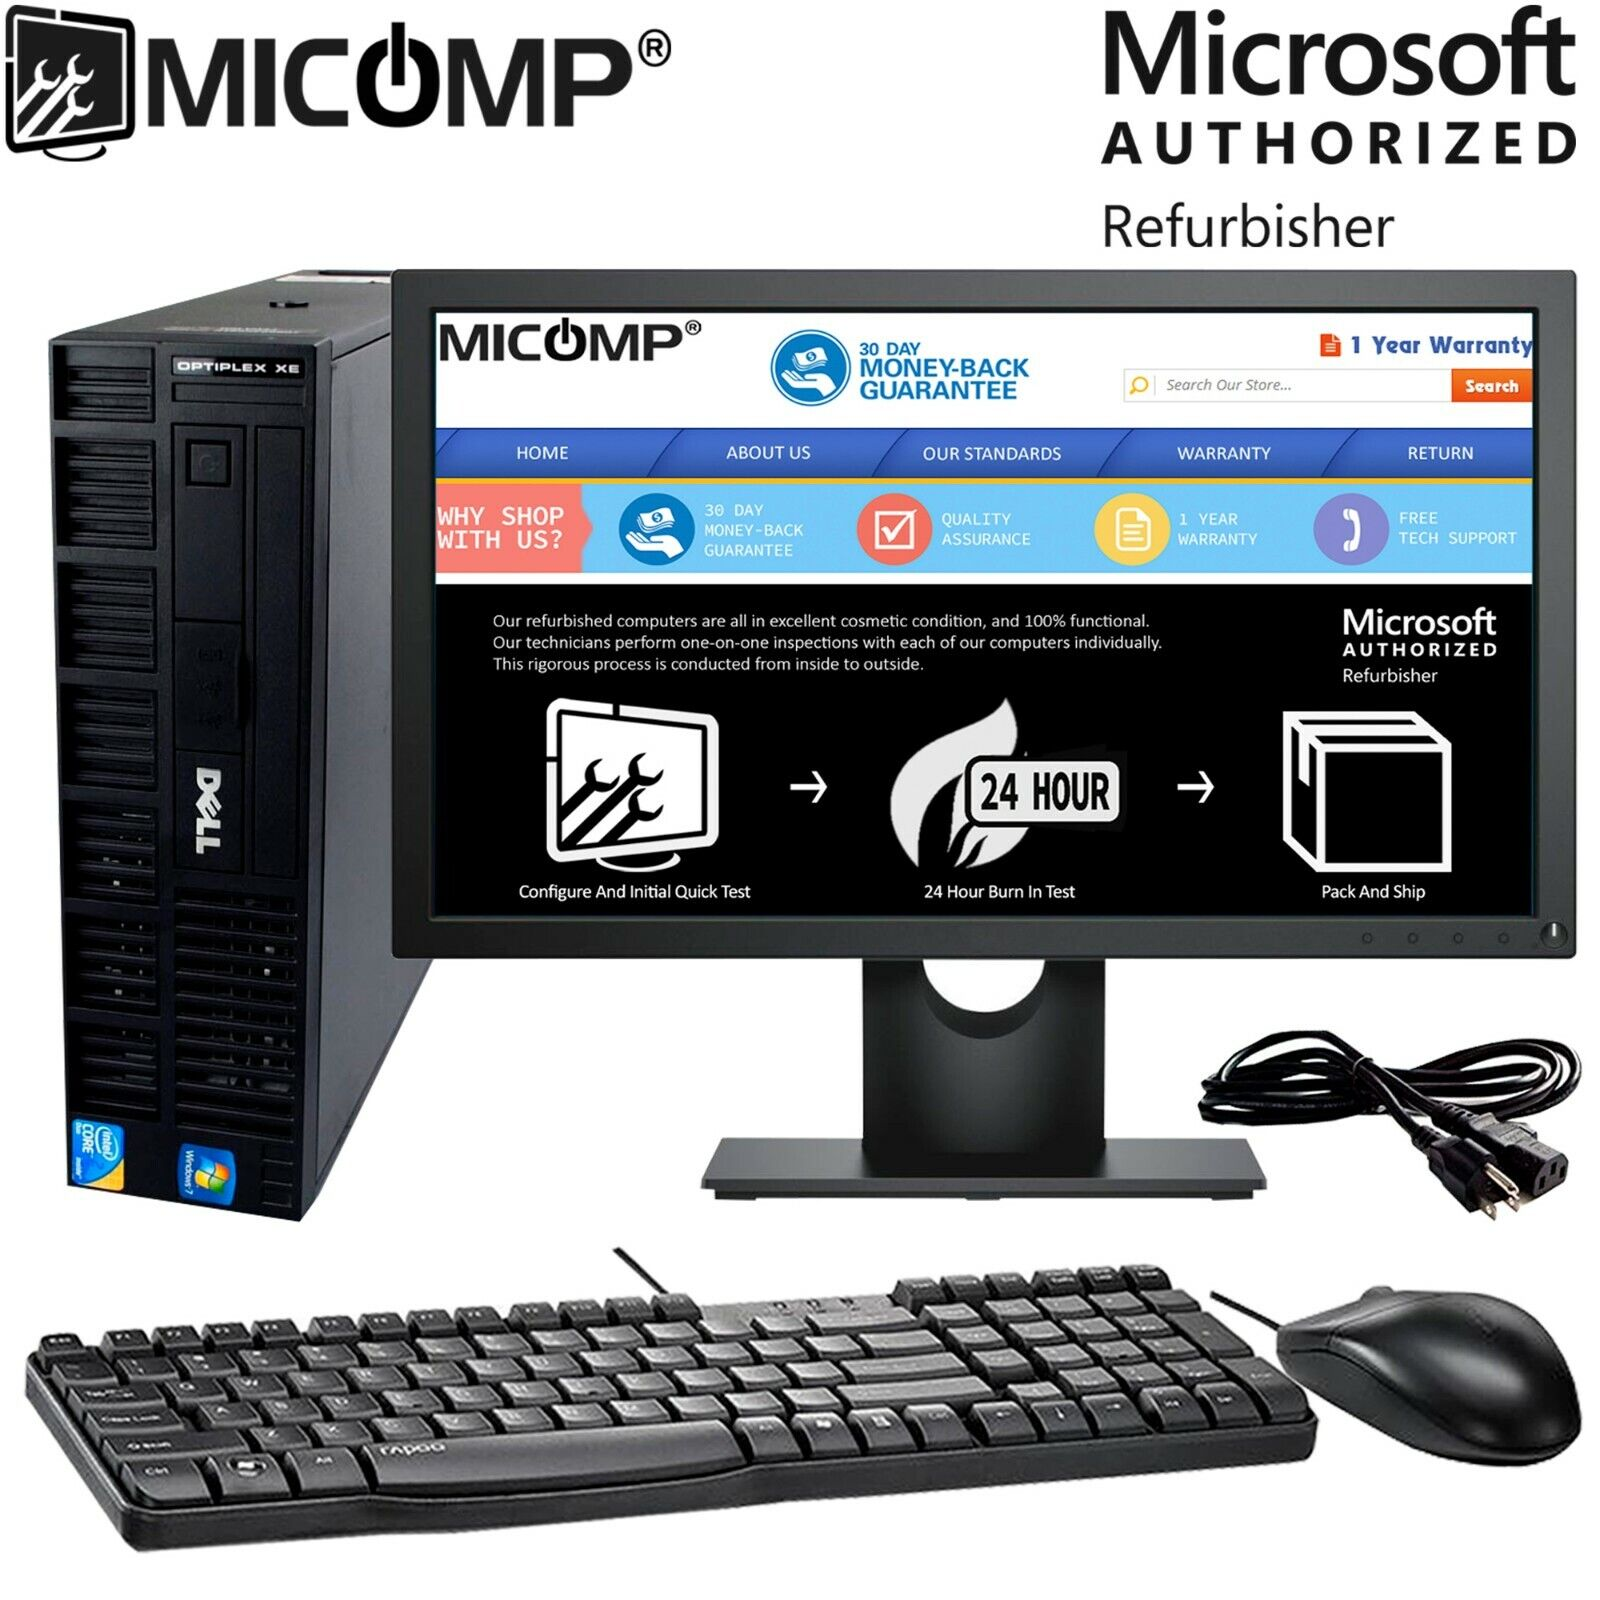 dell-desktop-computer-22-lcd-bundle-8gb-ram-2tb-hdd-windows-10-pro-pc-wifi